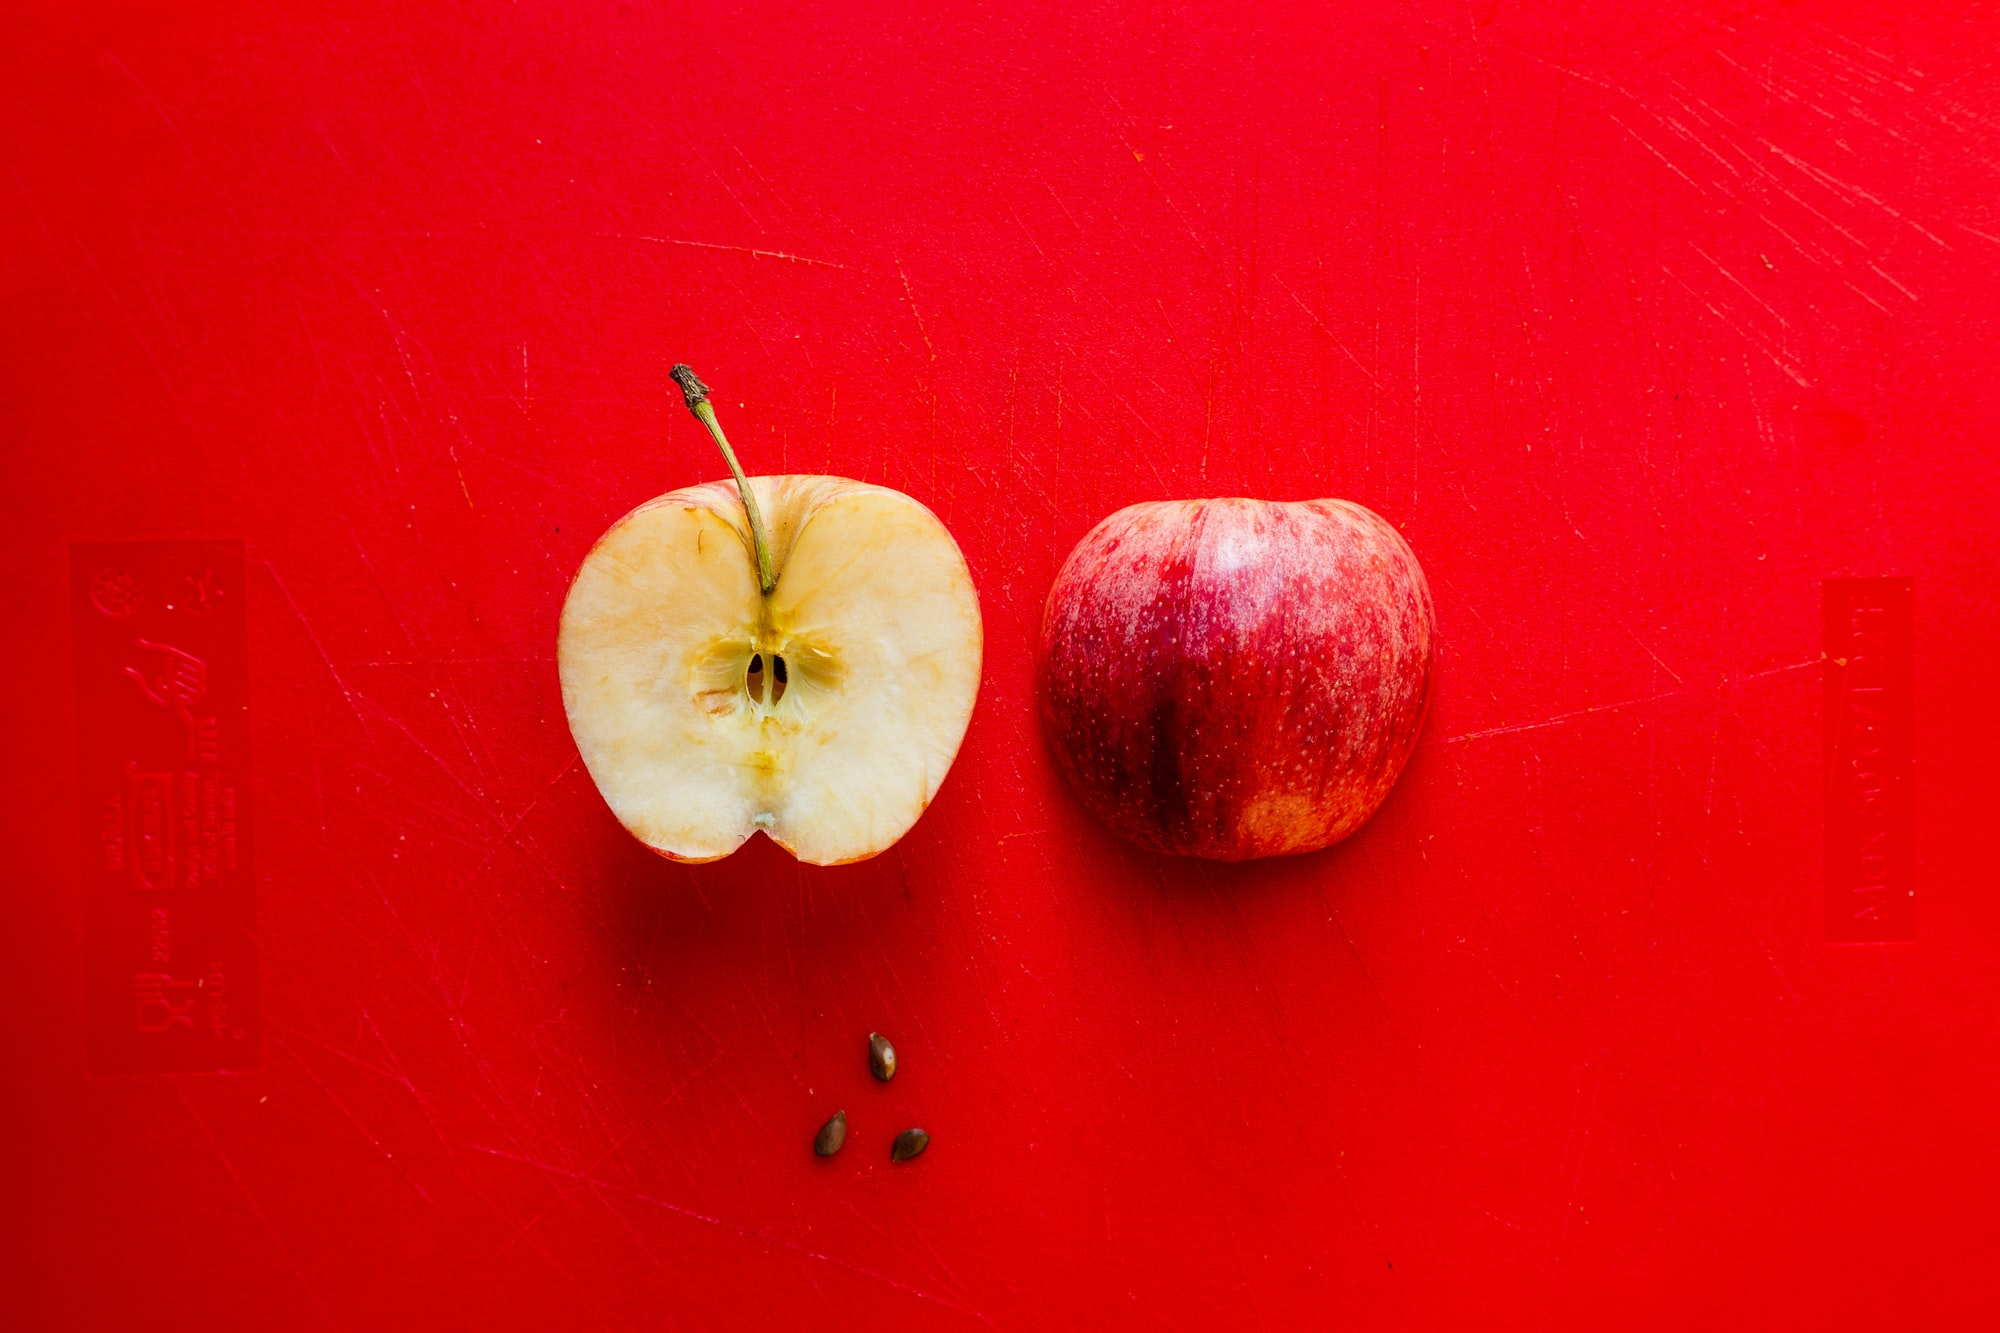 Apple is a superfruit that contains pectin, a prebiotic fiber by Louis Hansel for Unsplash.